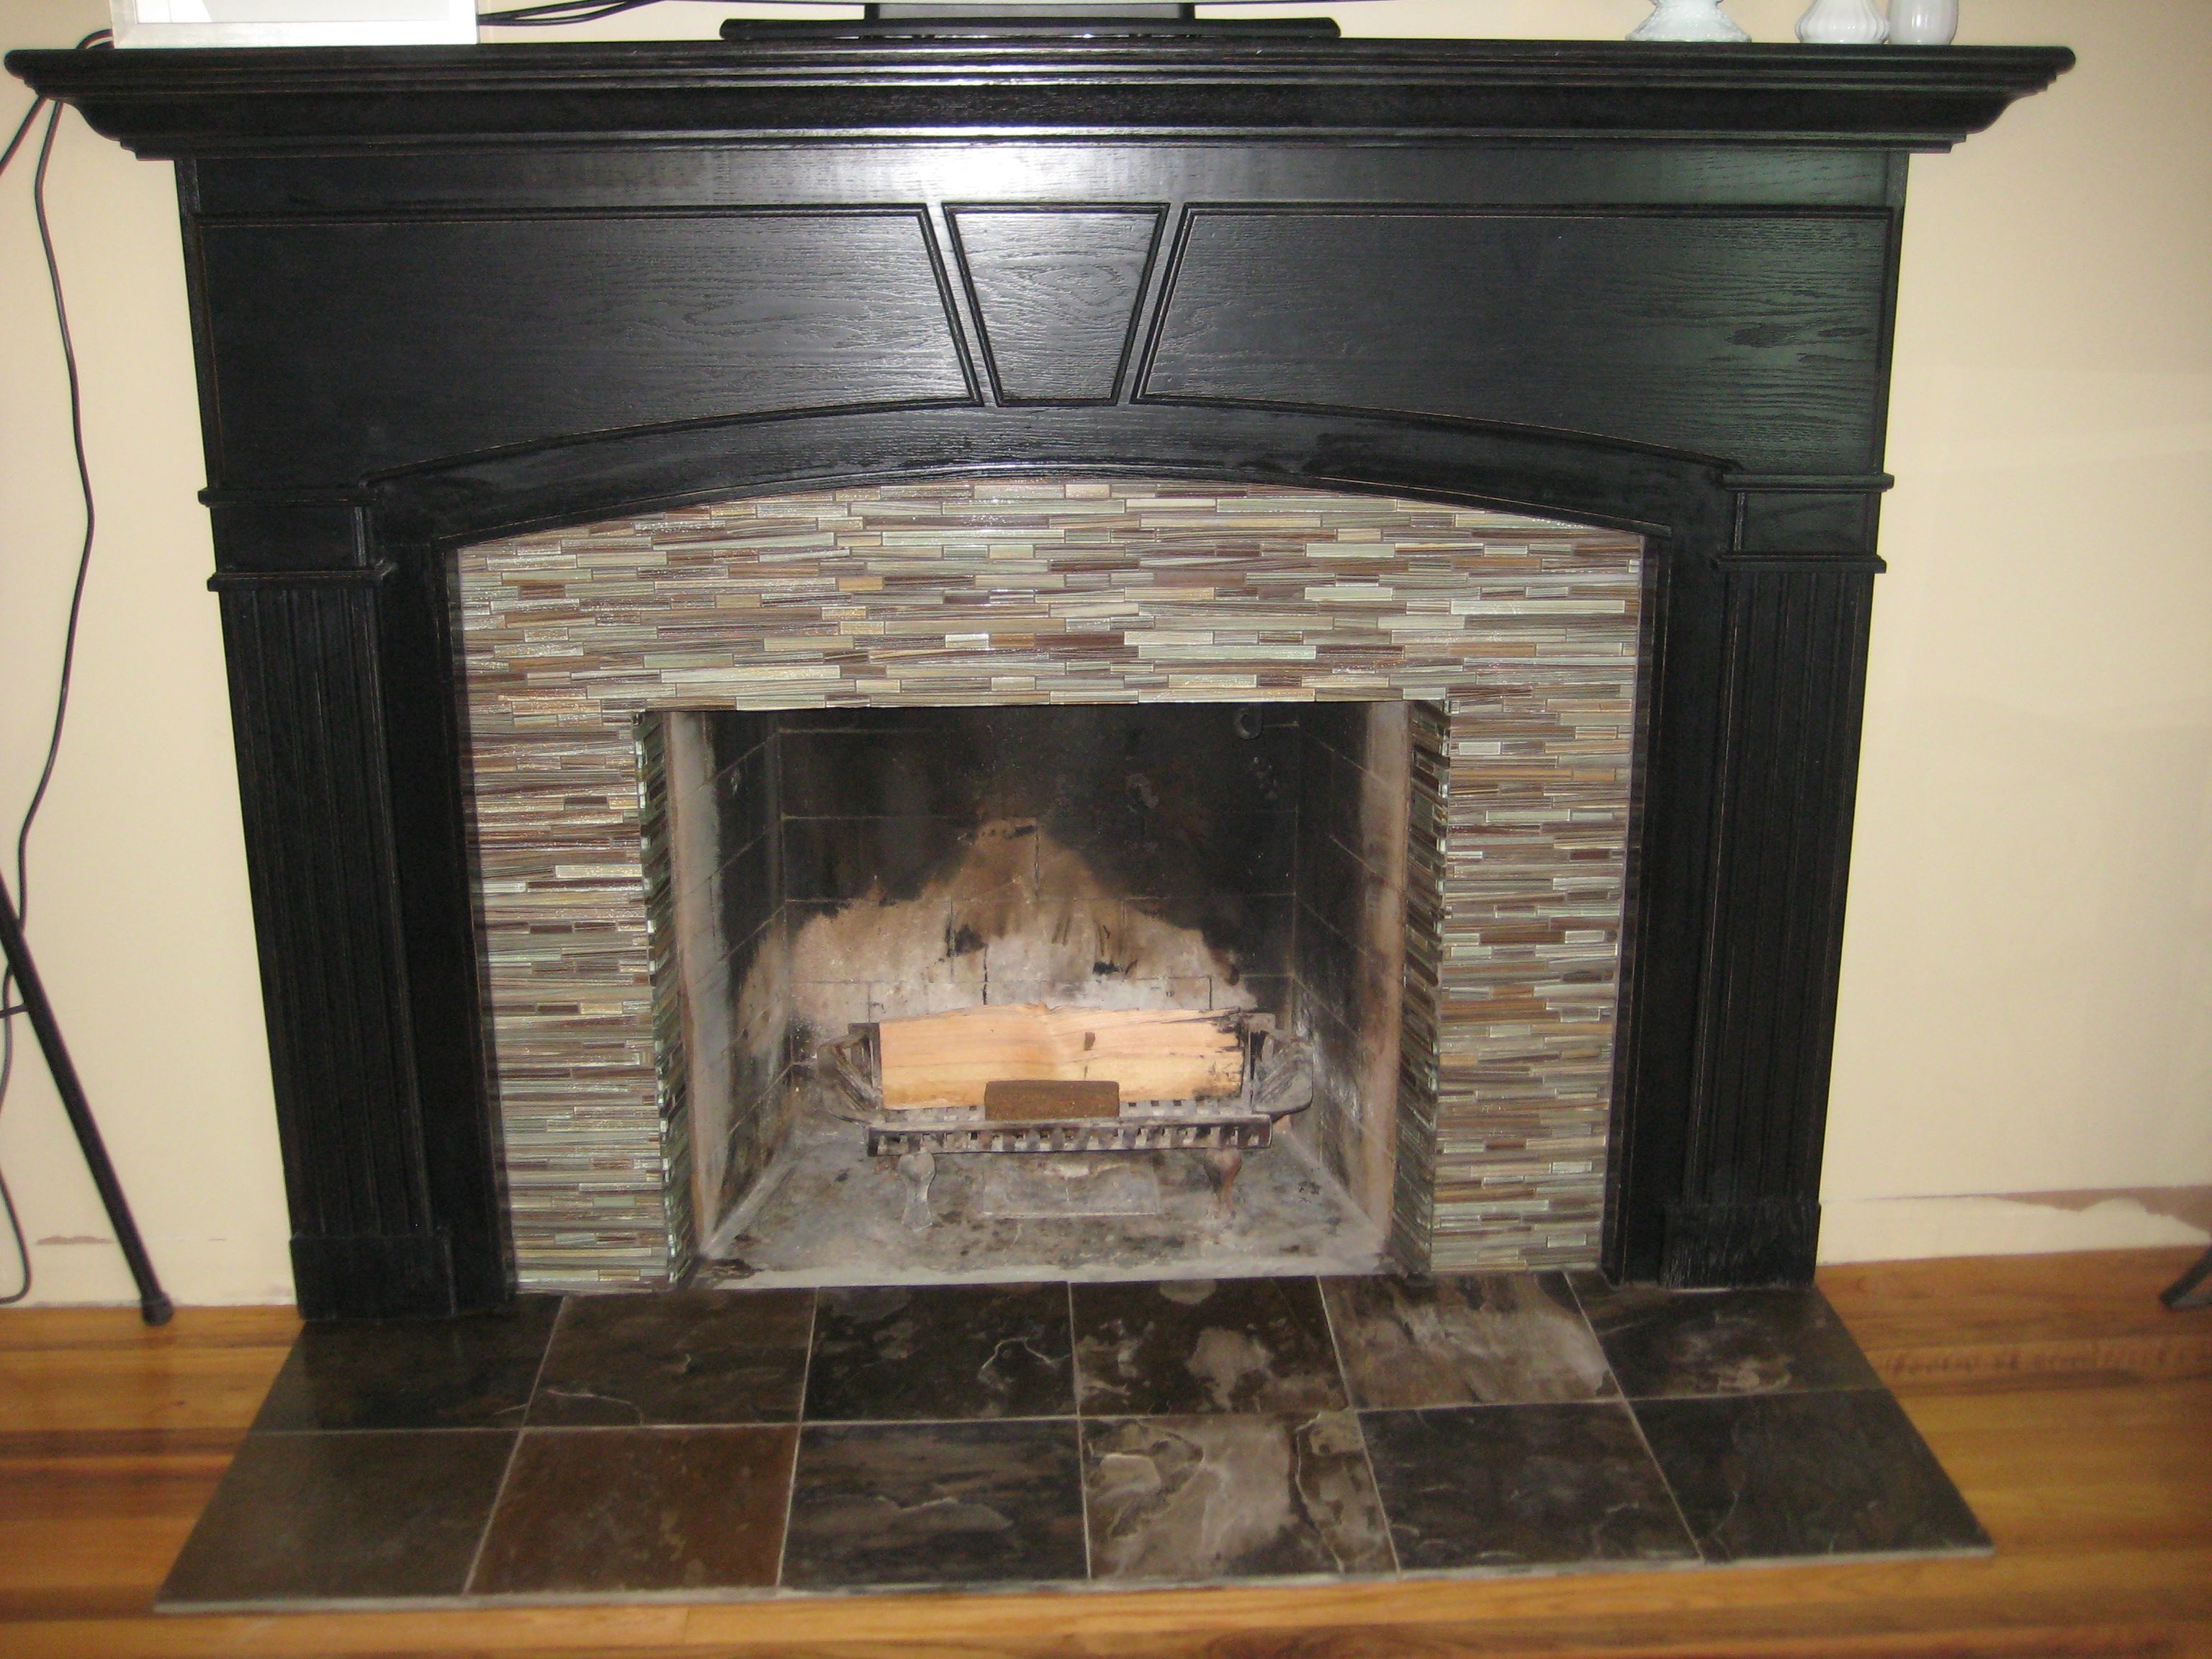 Living in High Gloss: Tiling the Fireplace Surround | Fireplace ...